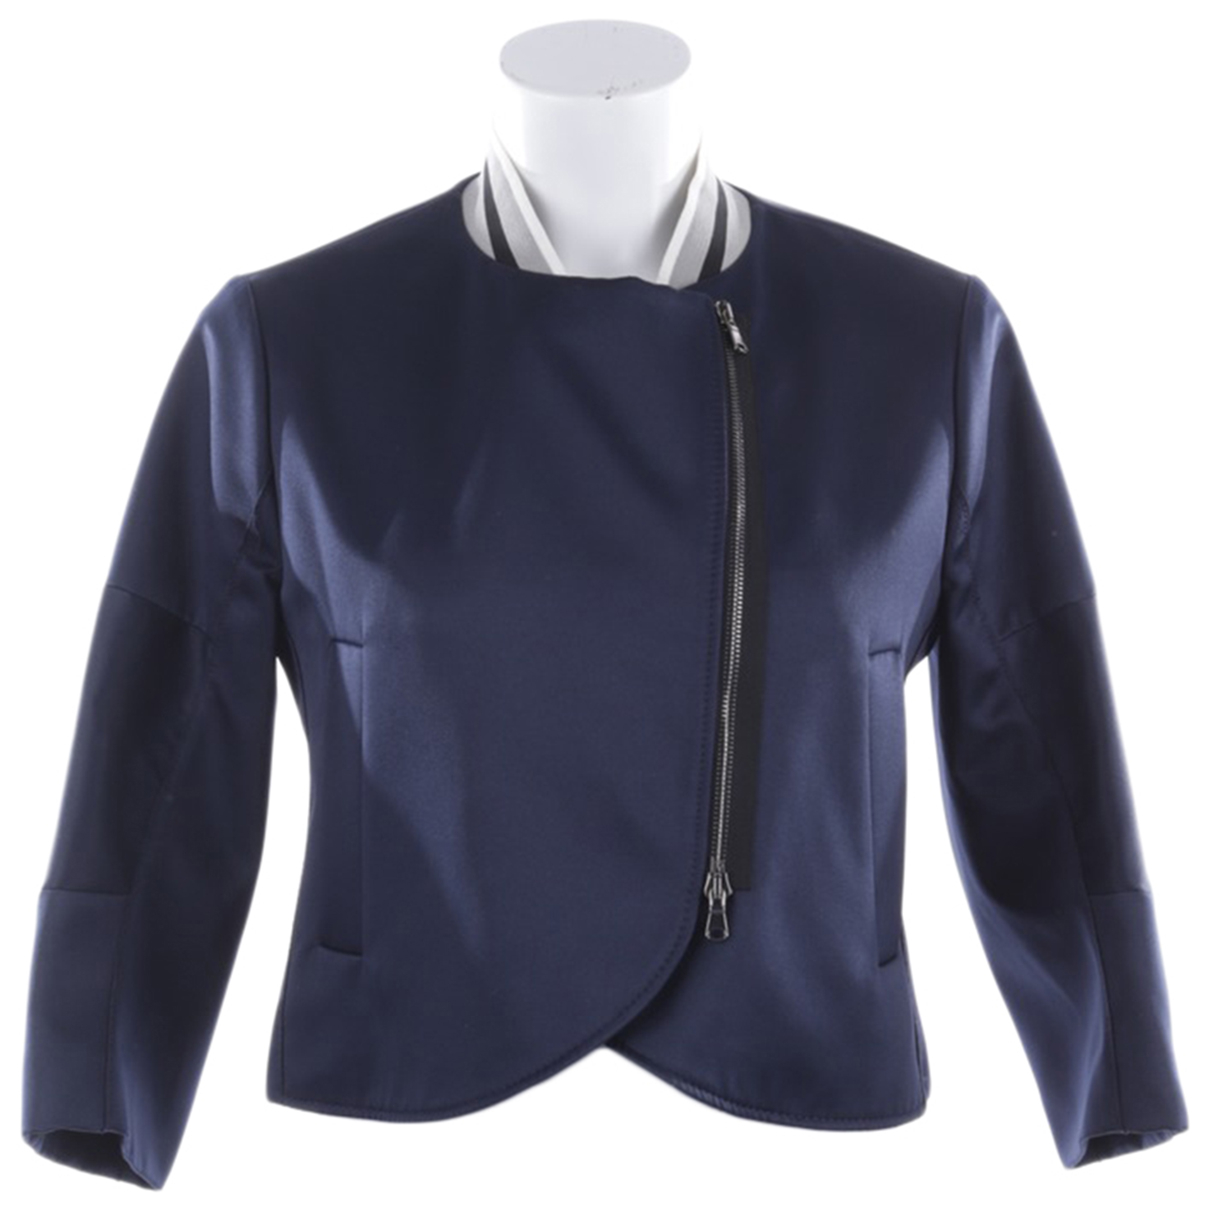 Dorothee Schumacher \N Blue jacket for Women 36 FR